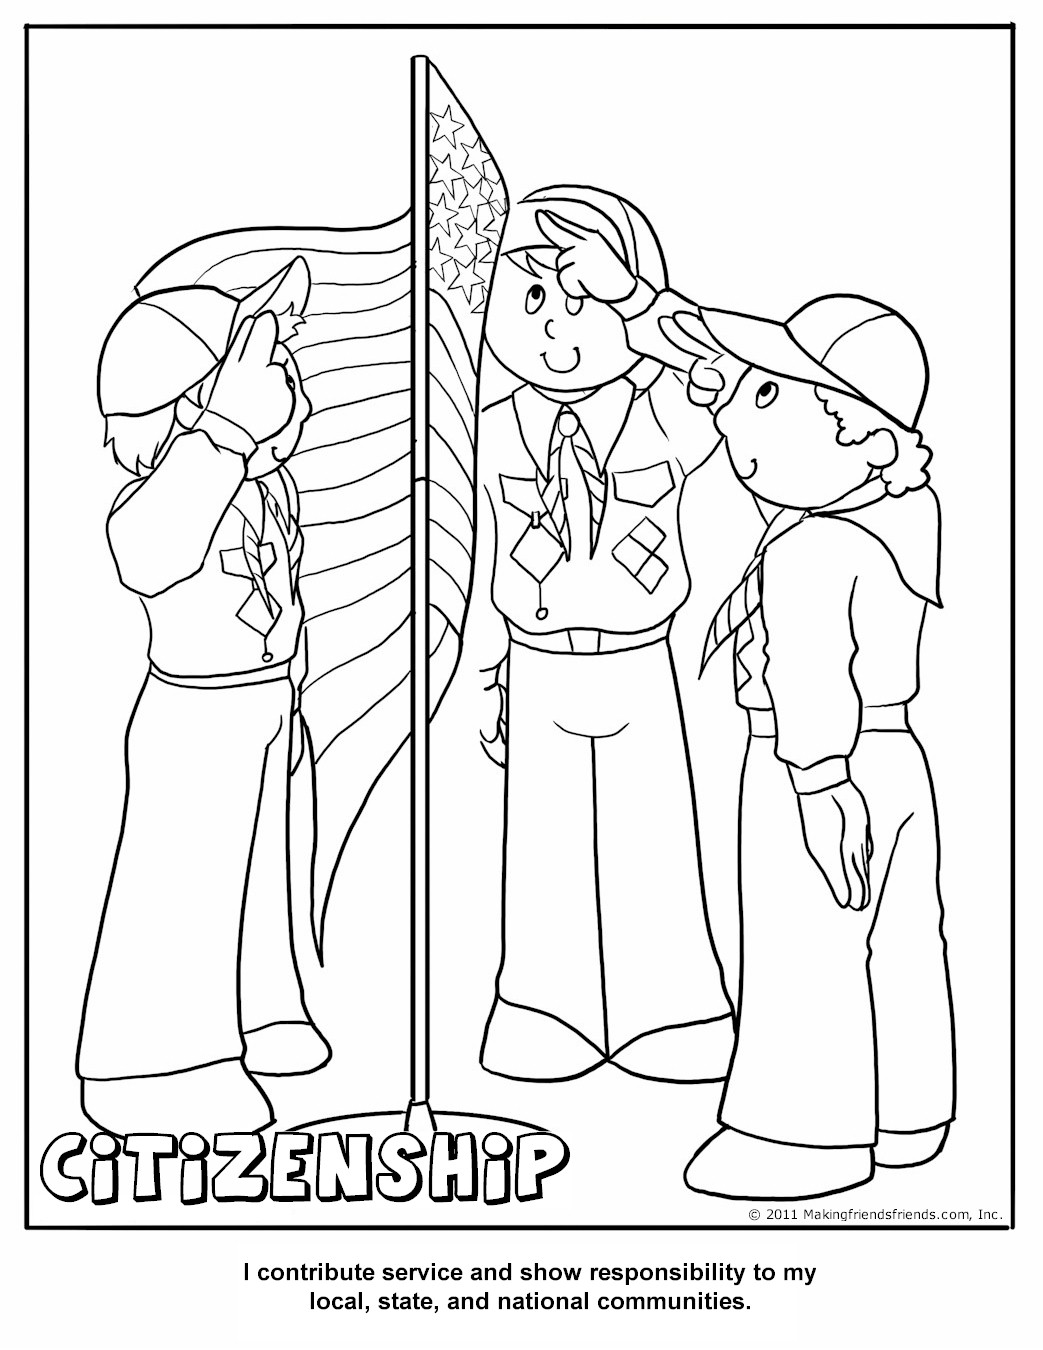 Cub Scout Citizenship Coloring Page